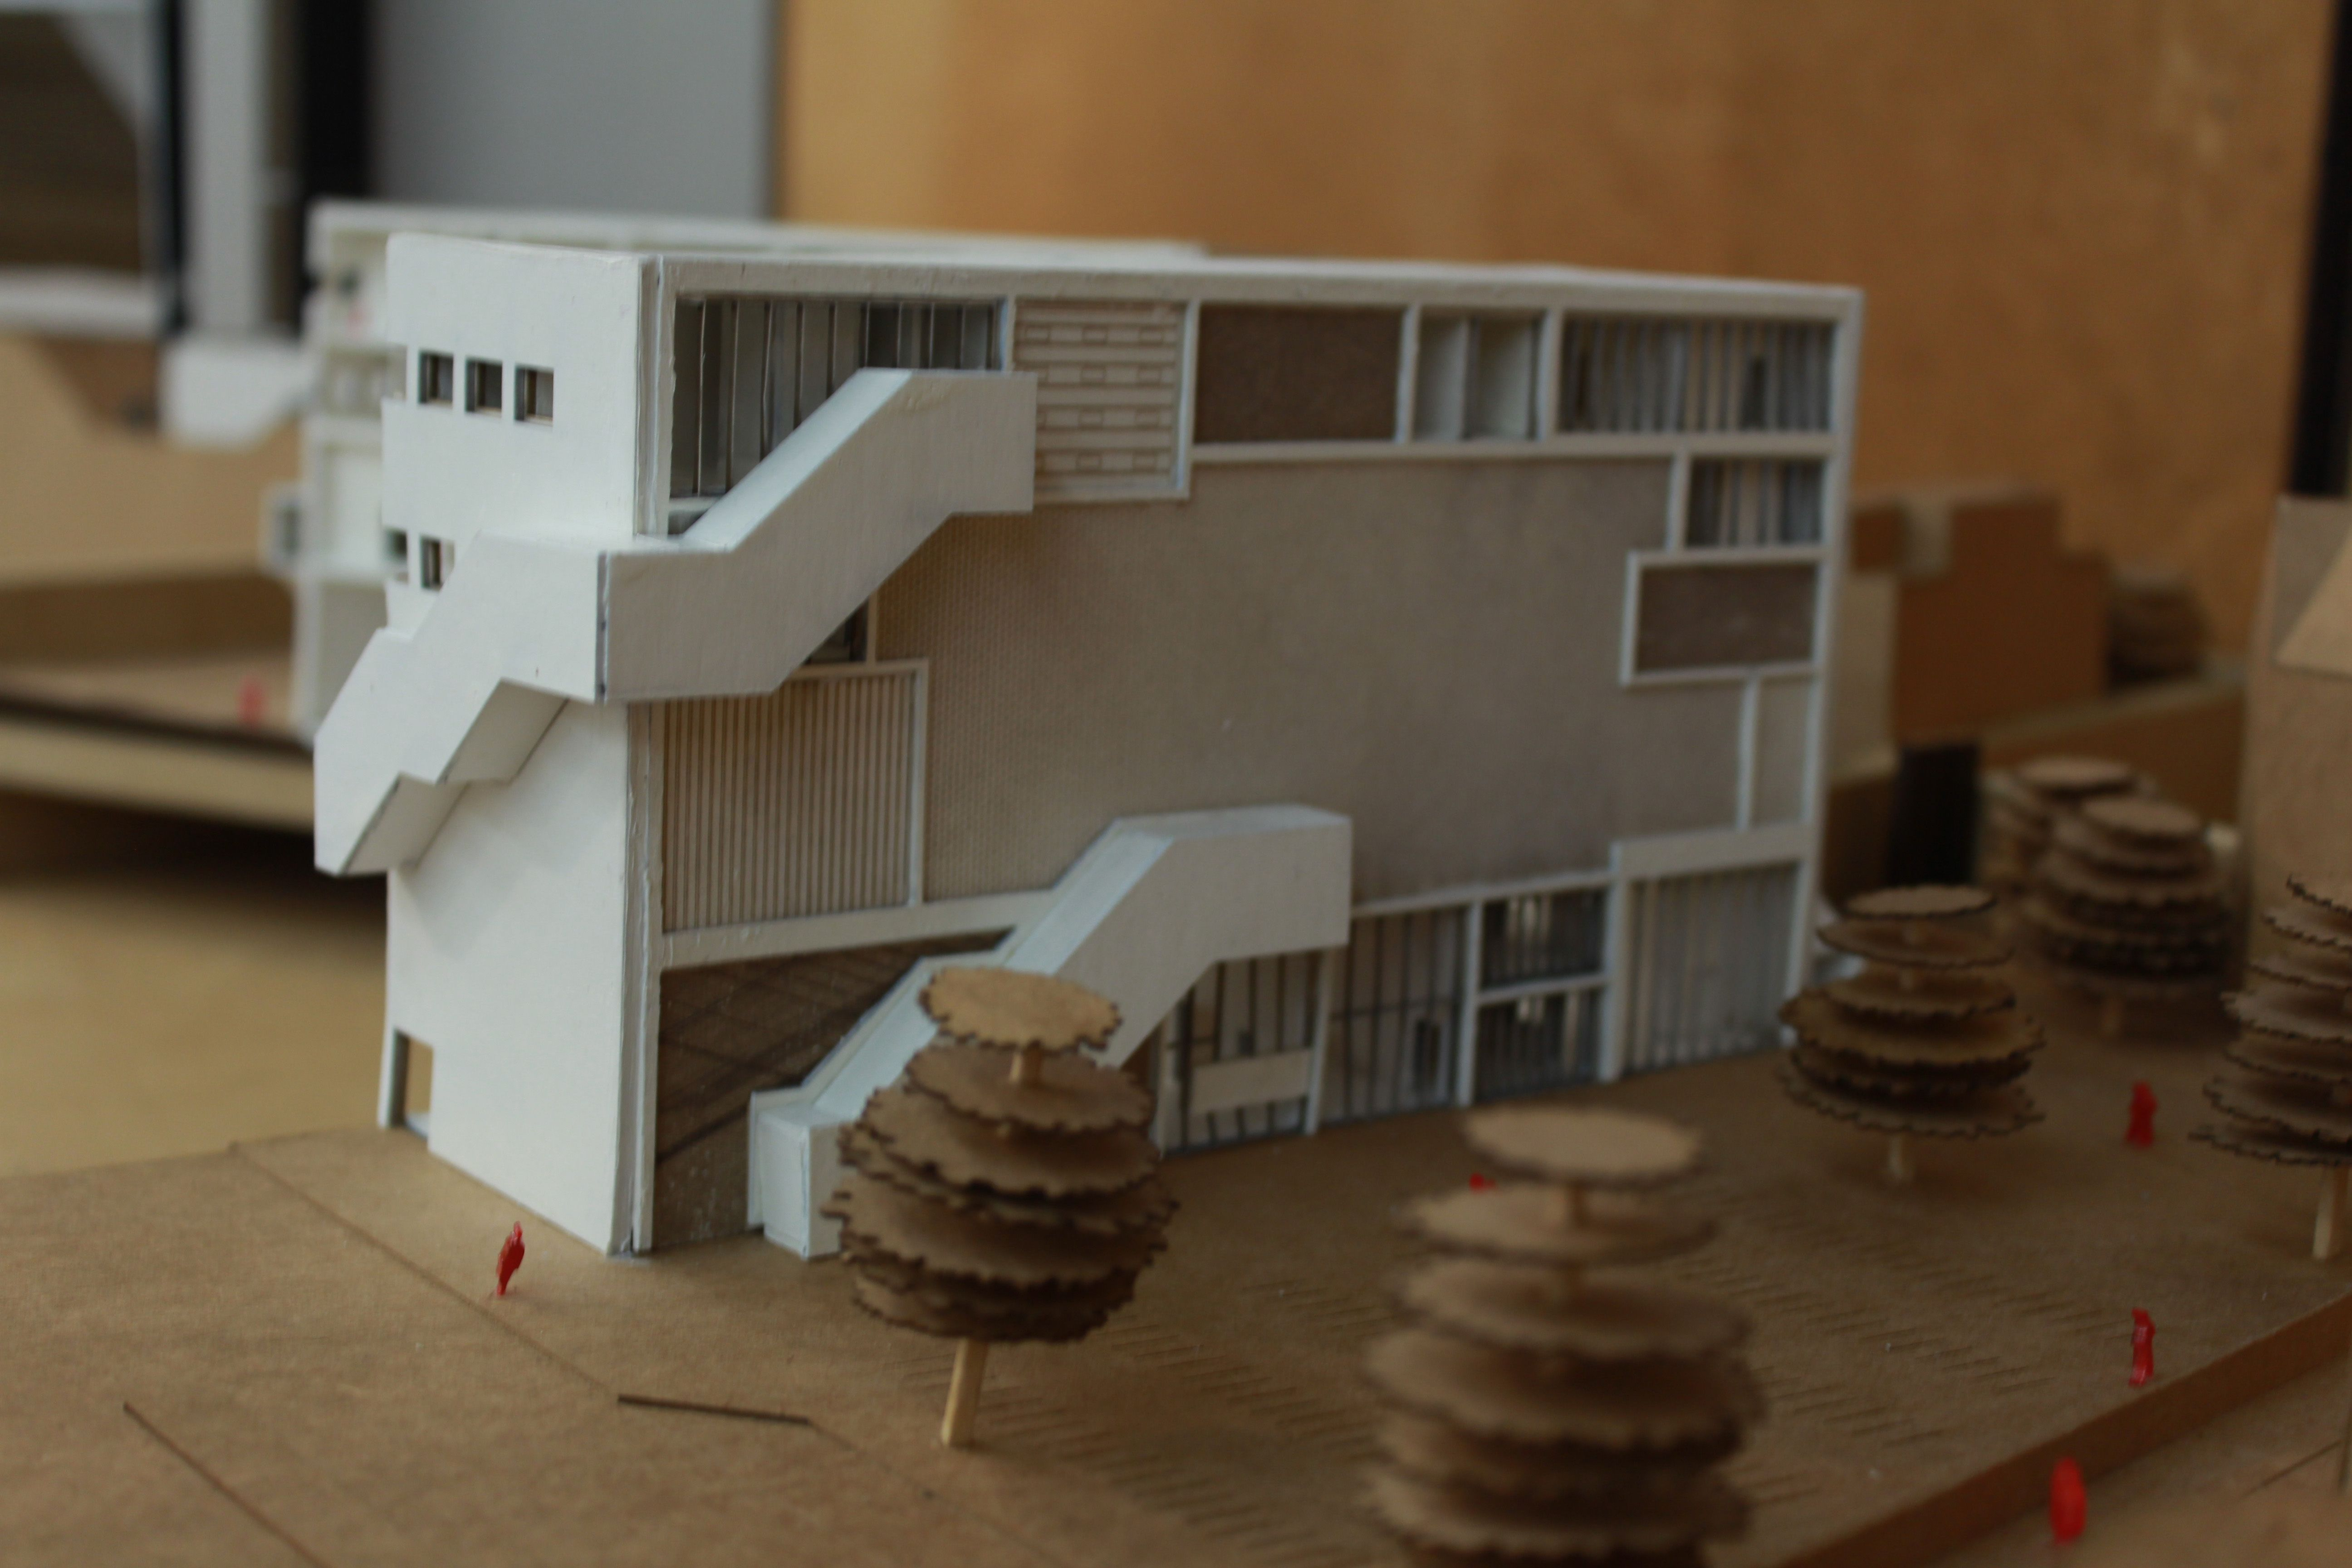 Effenaar | Eindhoven | MVRDV | group project - 1:200 sectional model